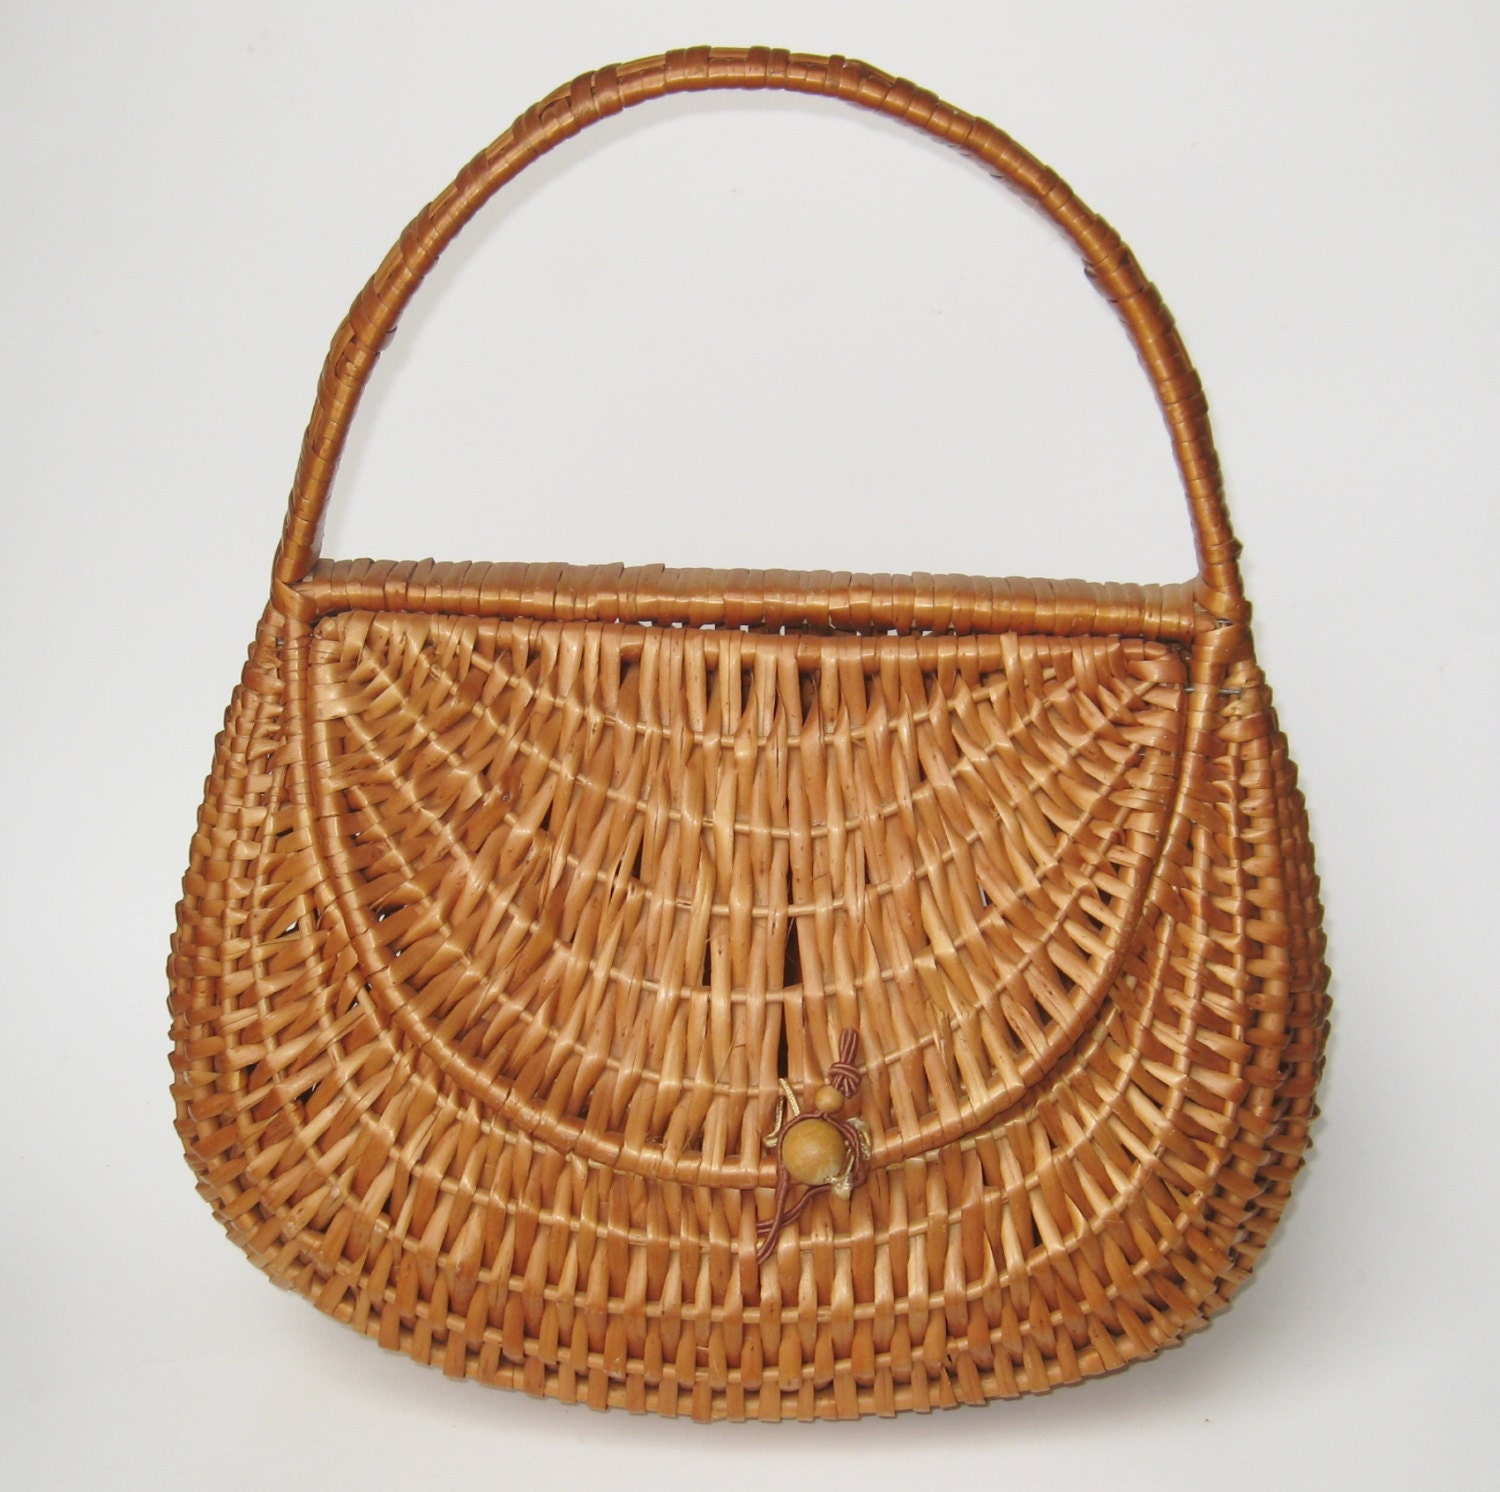 Woven Basket Purse : Vintage s afternoon picnic woven wicker basket purse hand